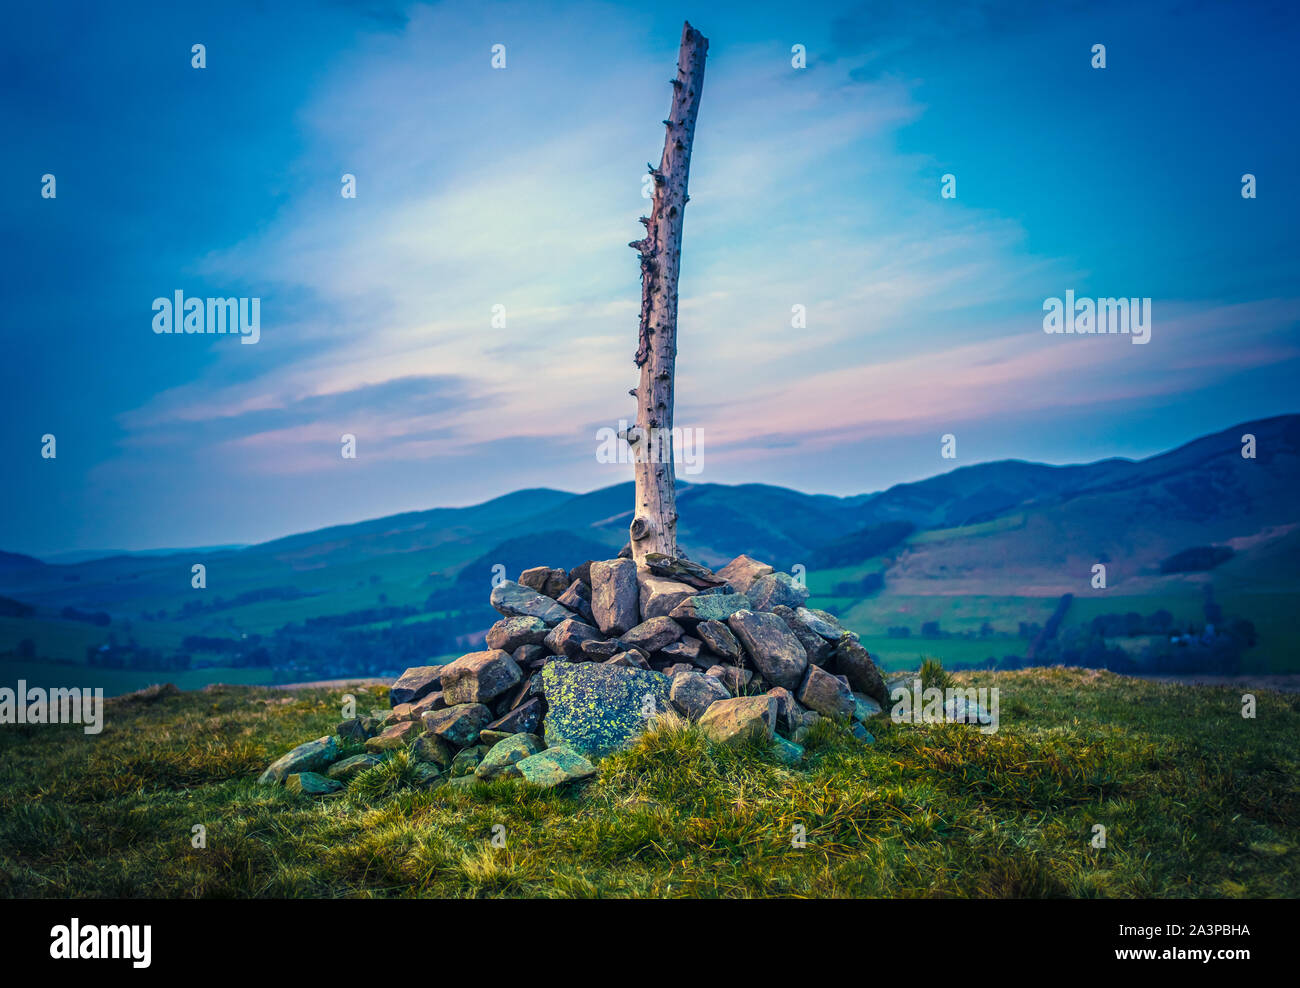 Scottish Hilltop With Cairn And Wooden Post At Sunset Stock Photo